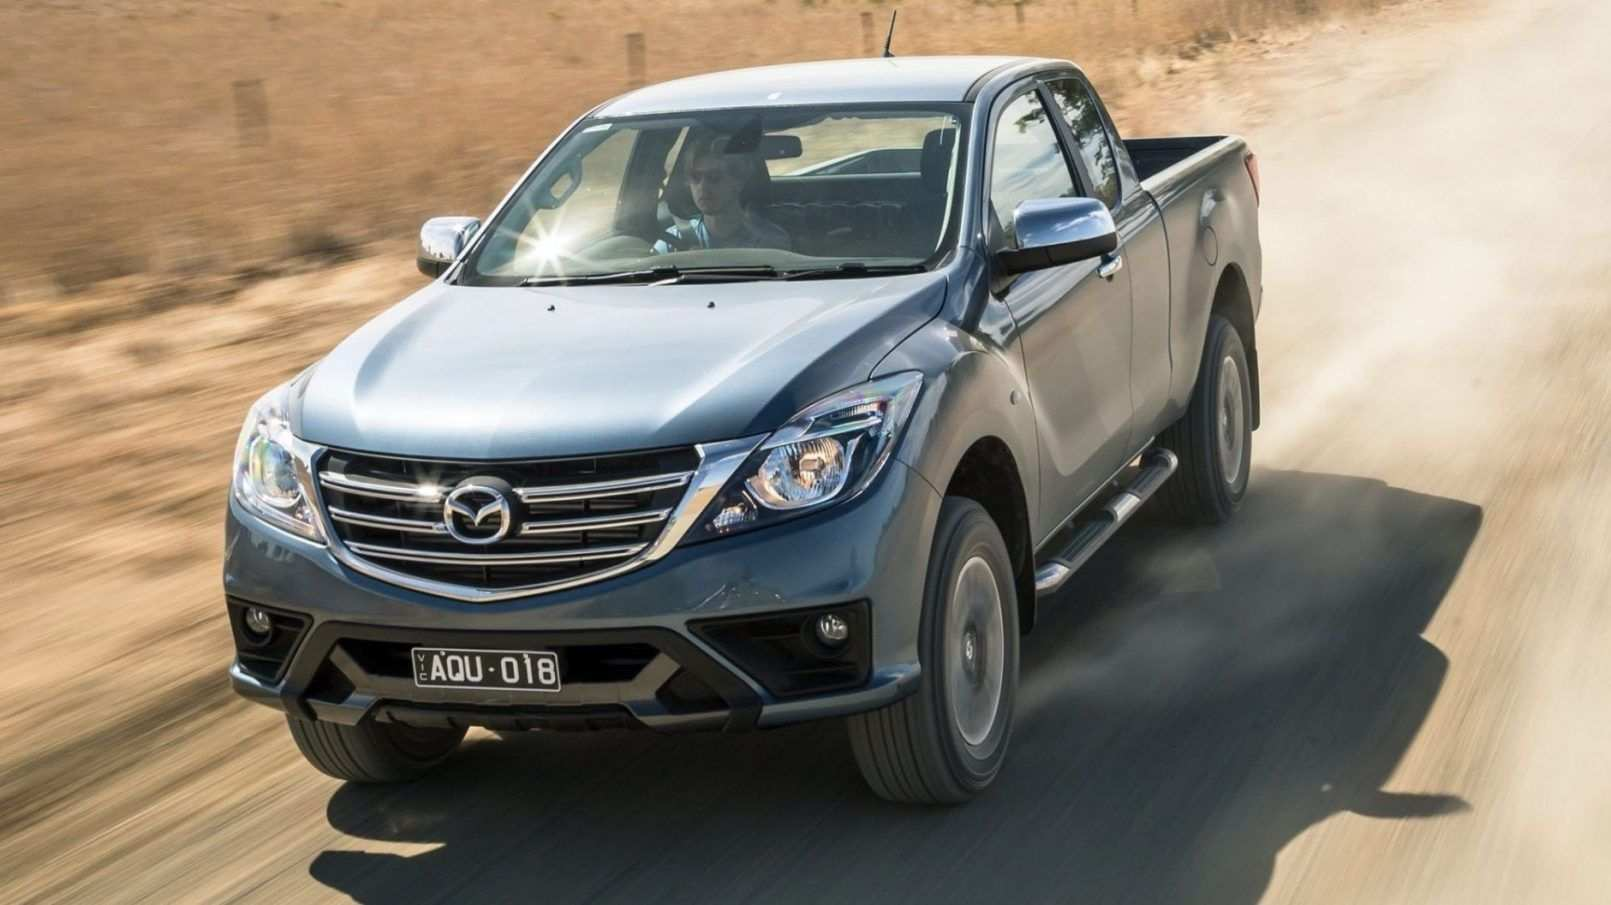 73 The Mazda Bt 50 Pro 2019 Pictures with Mazda Bt 50 Pro 2019